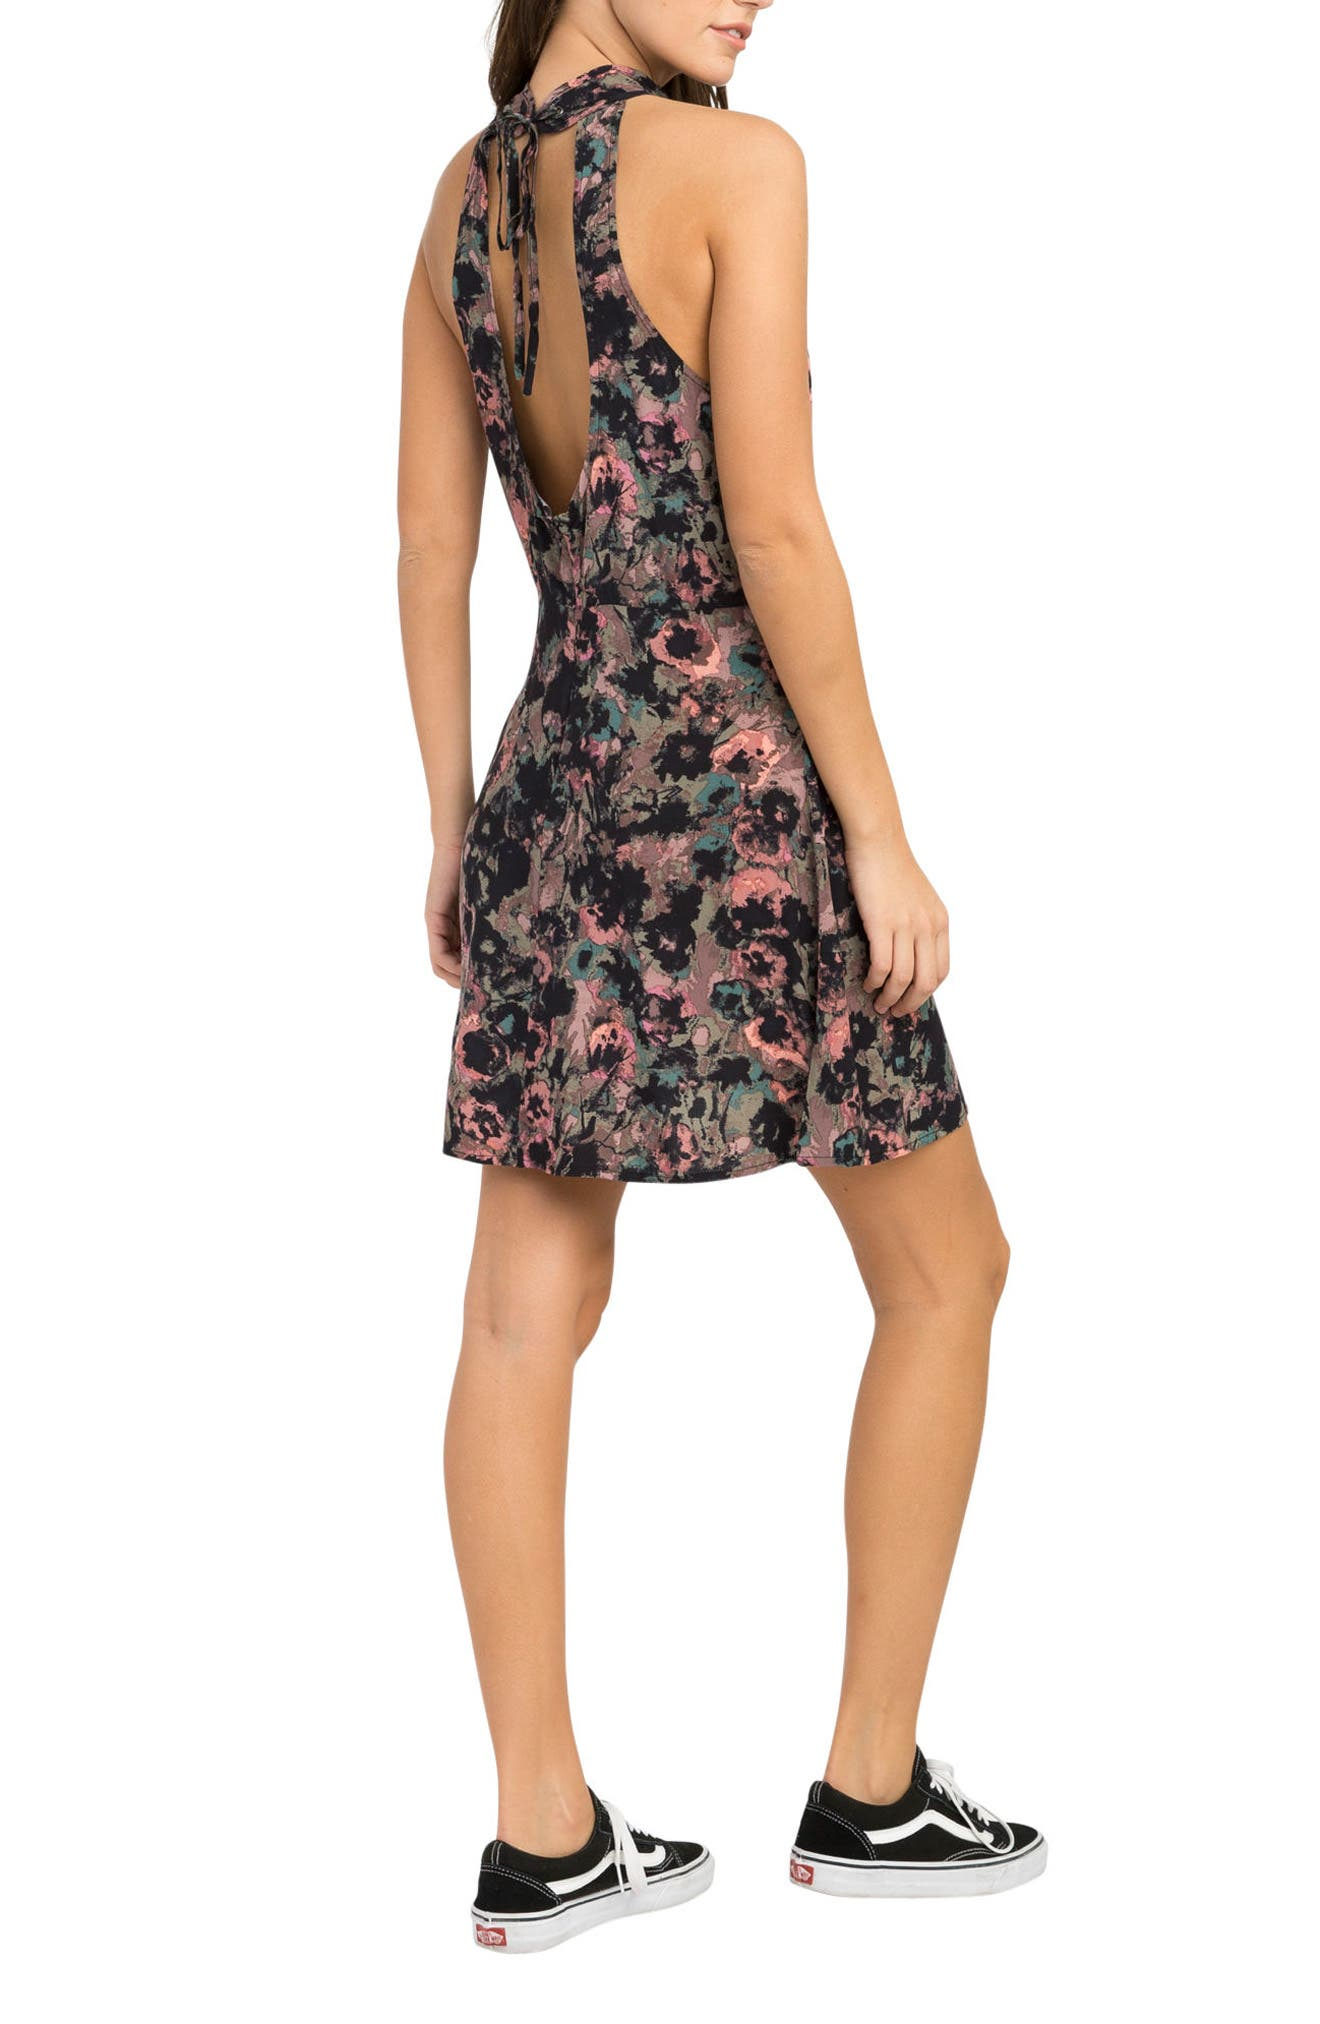 Kingsman Halter Dress,                             Alternate thumbnail 2, color,                             652